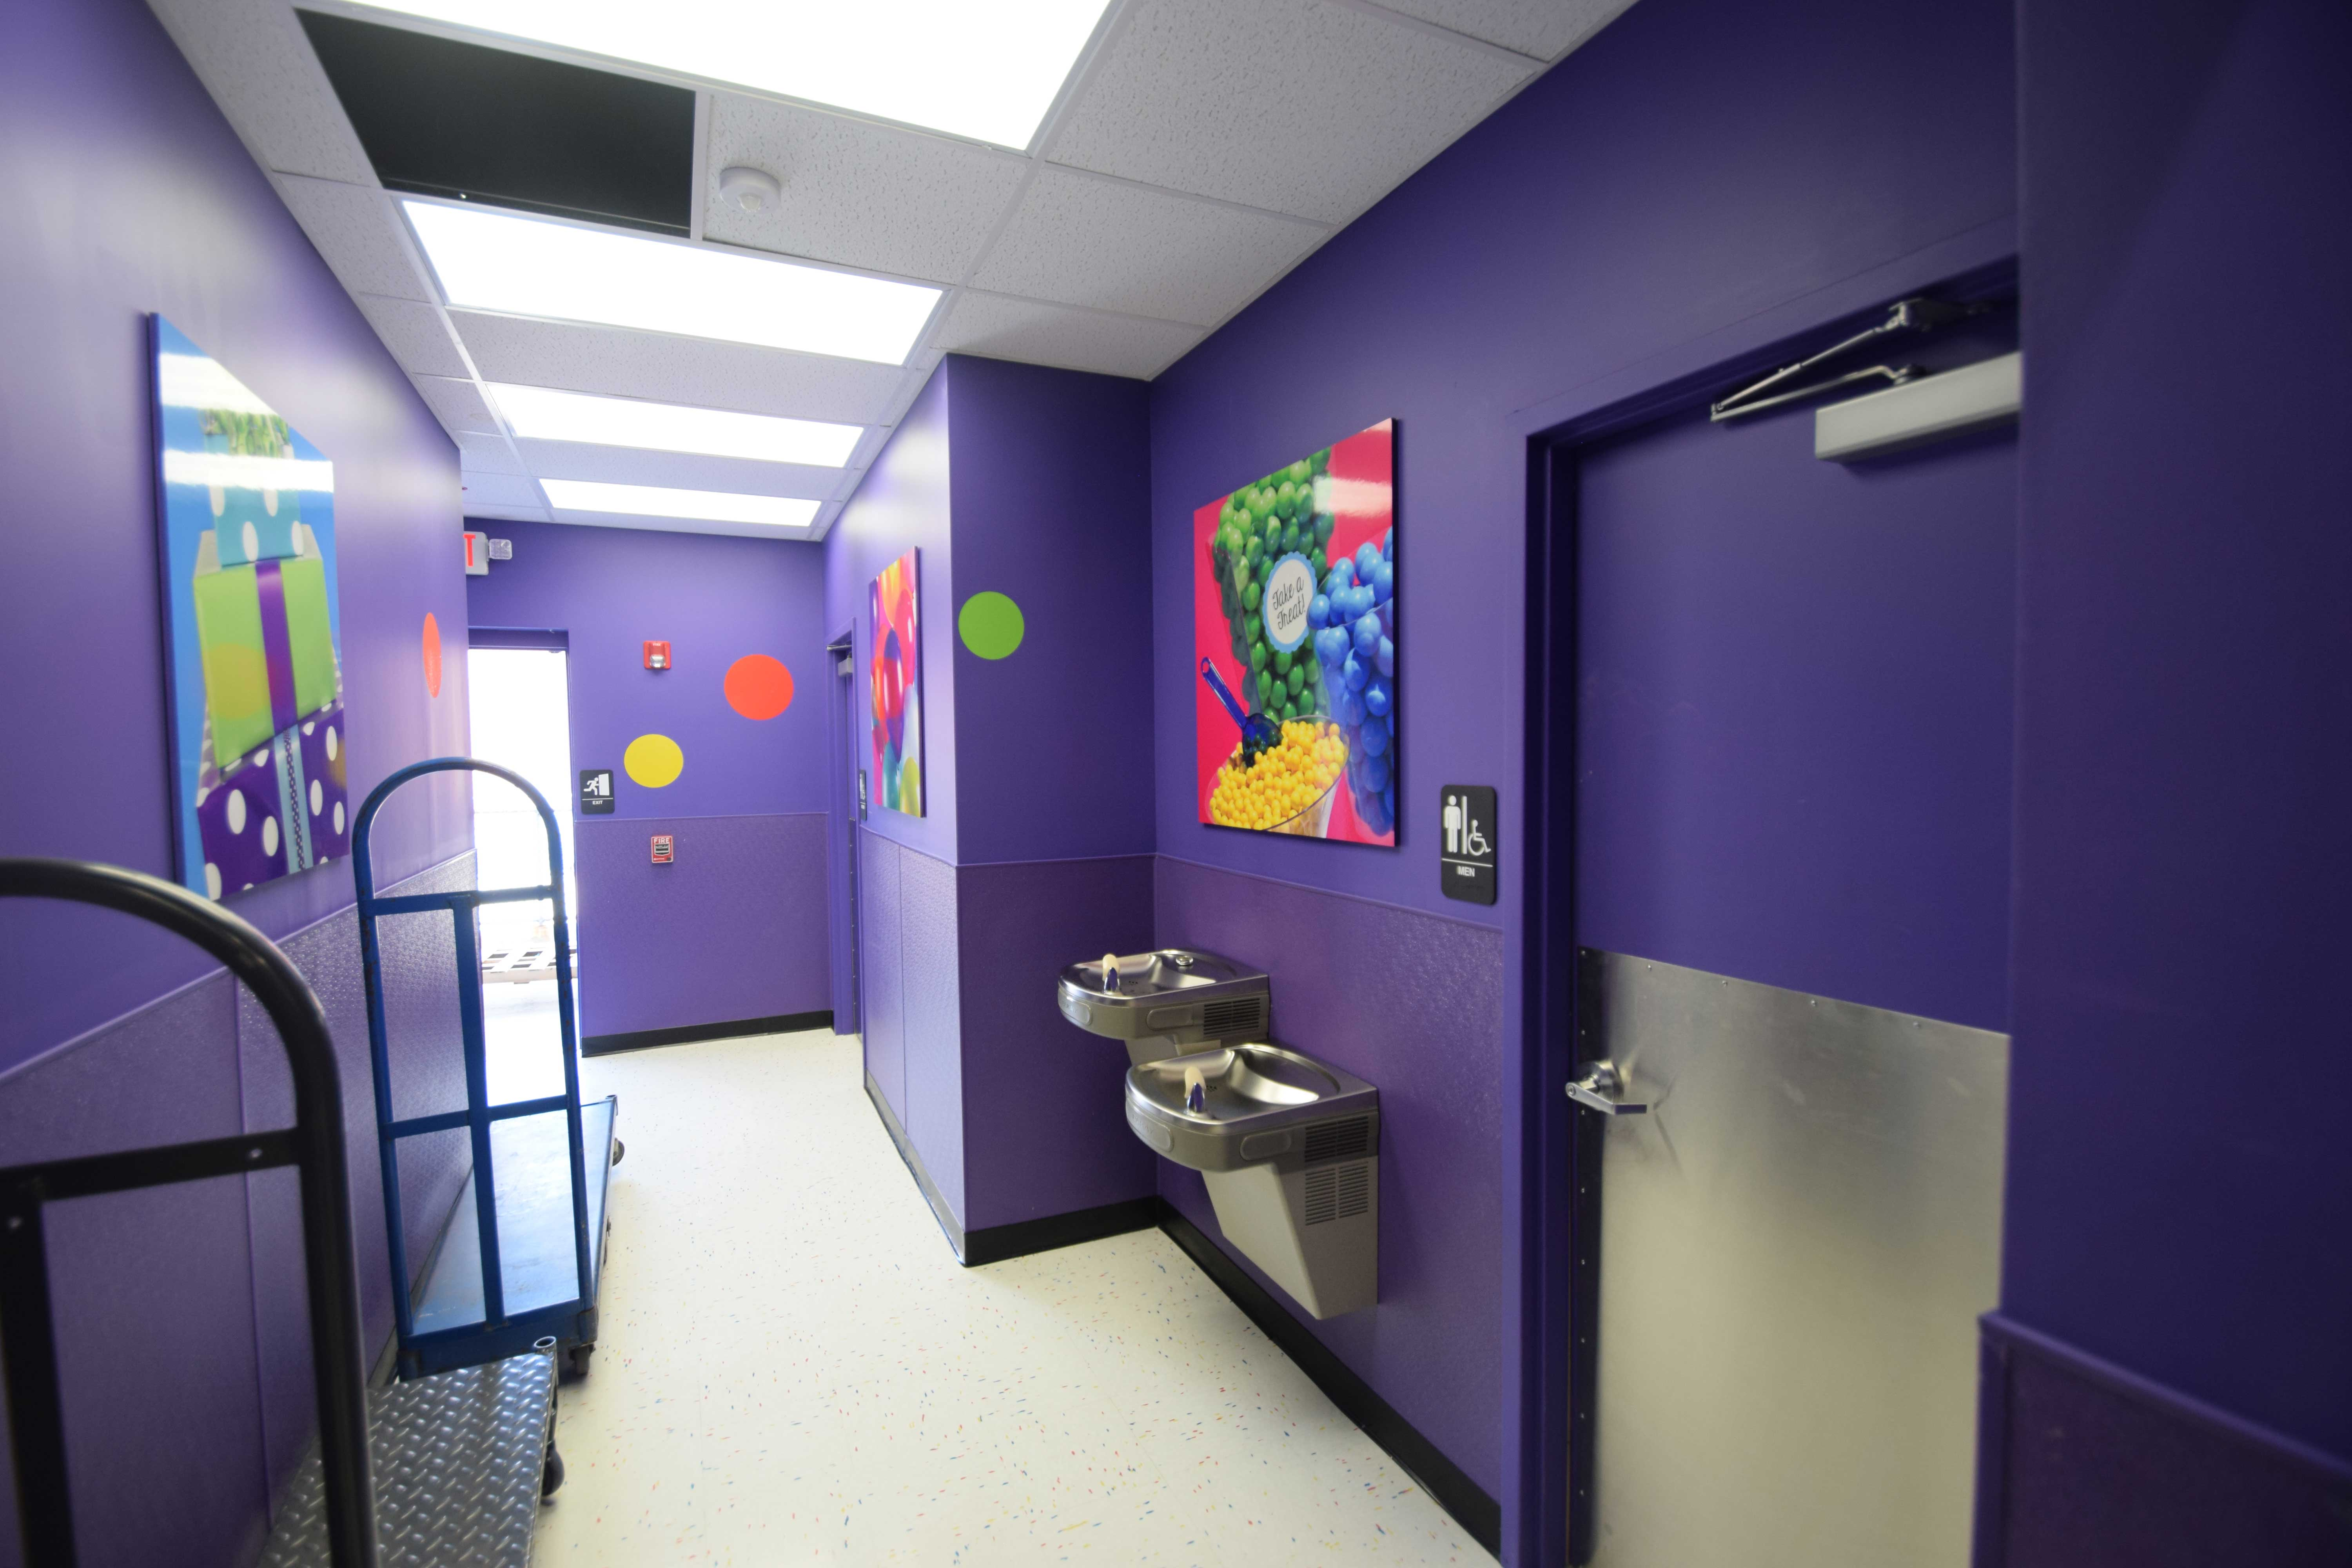 Party-City-Restrooms